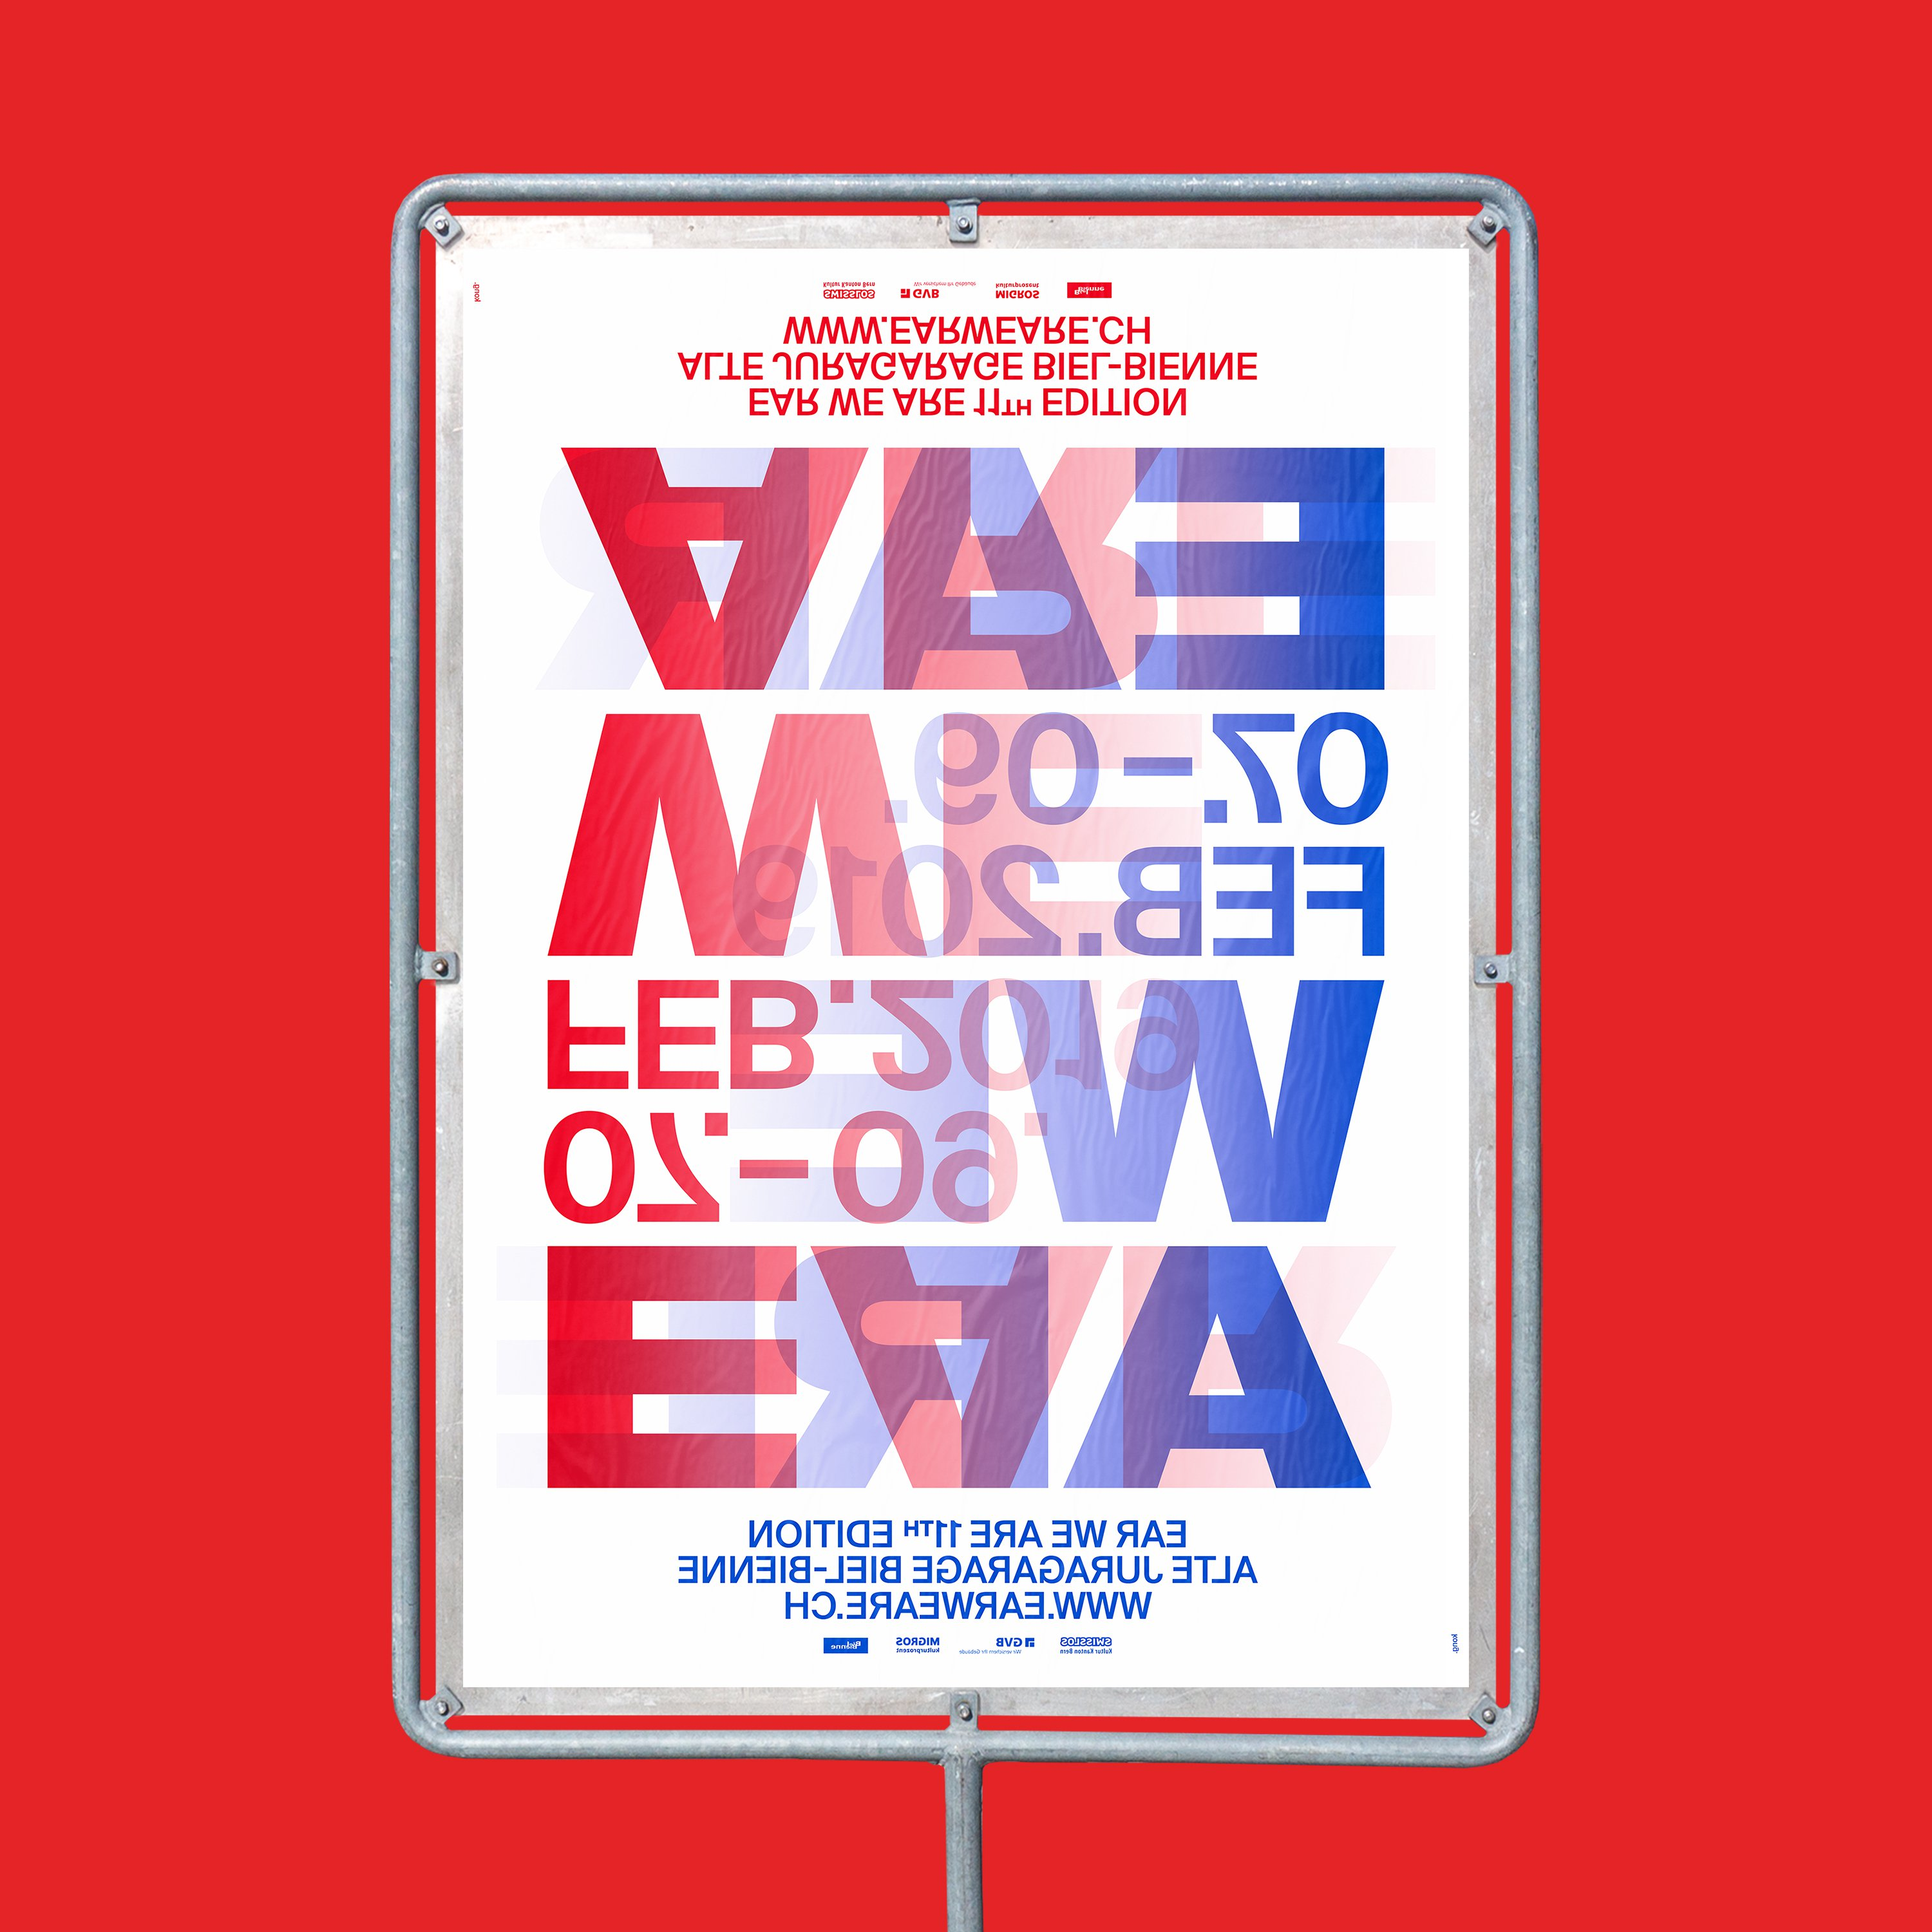 kong grafik ear-we-are plakat biel 2019